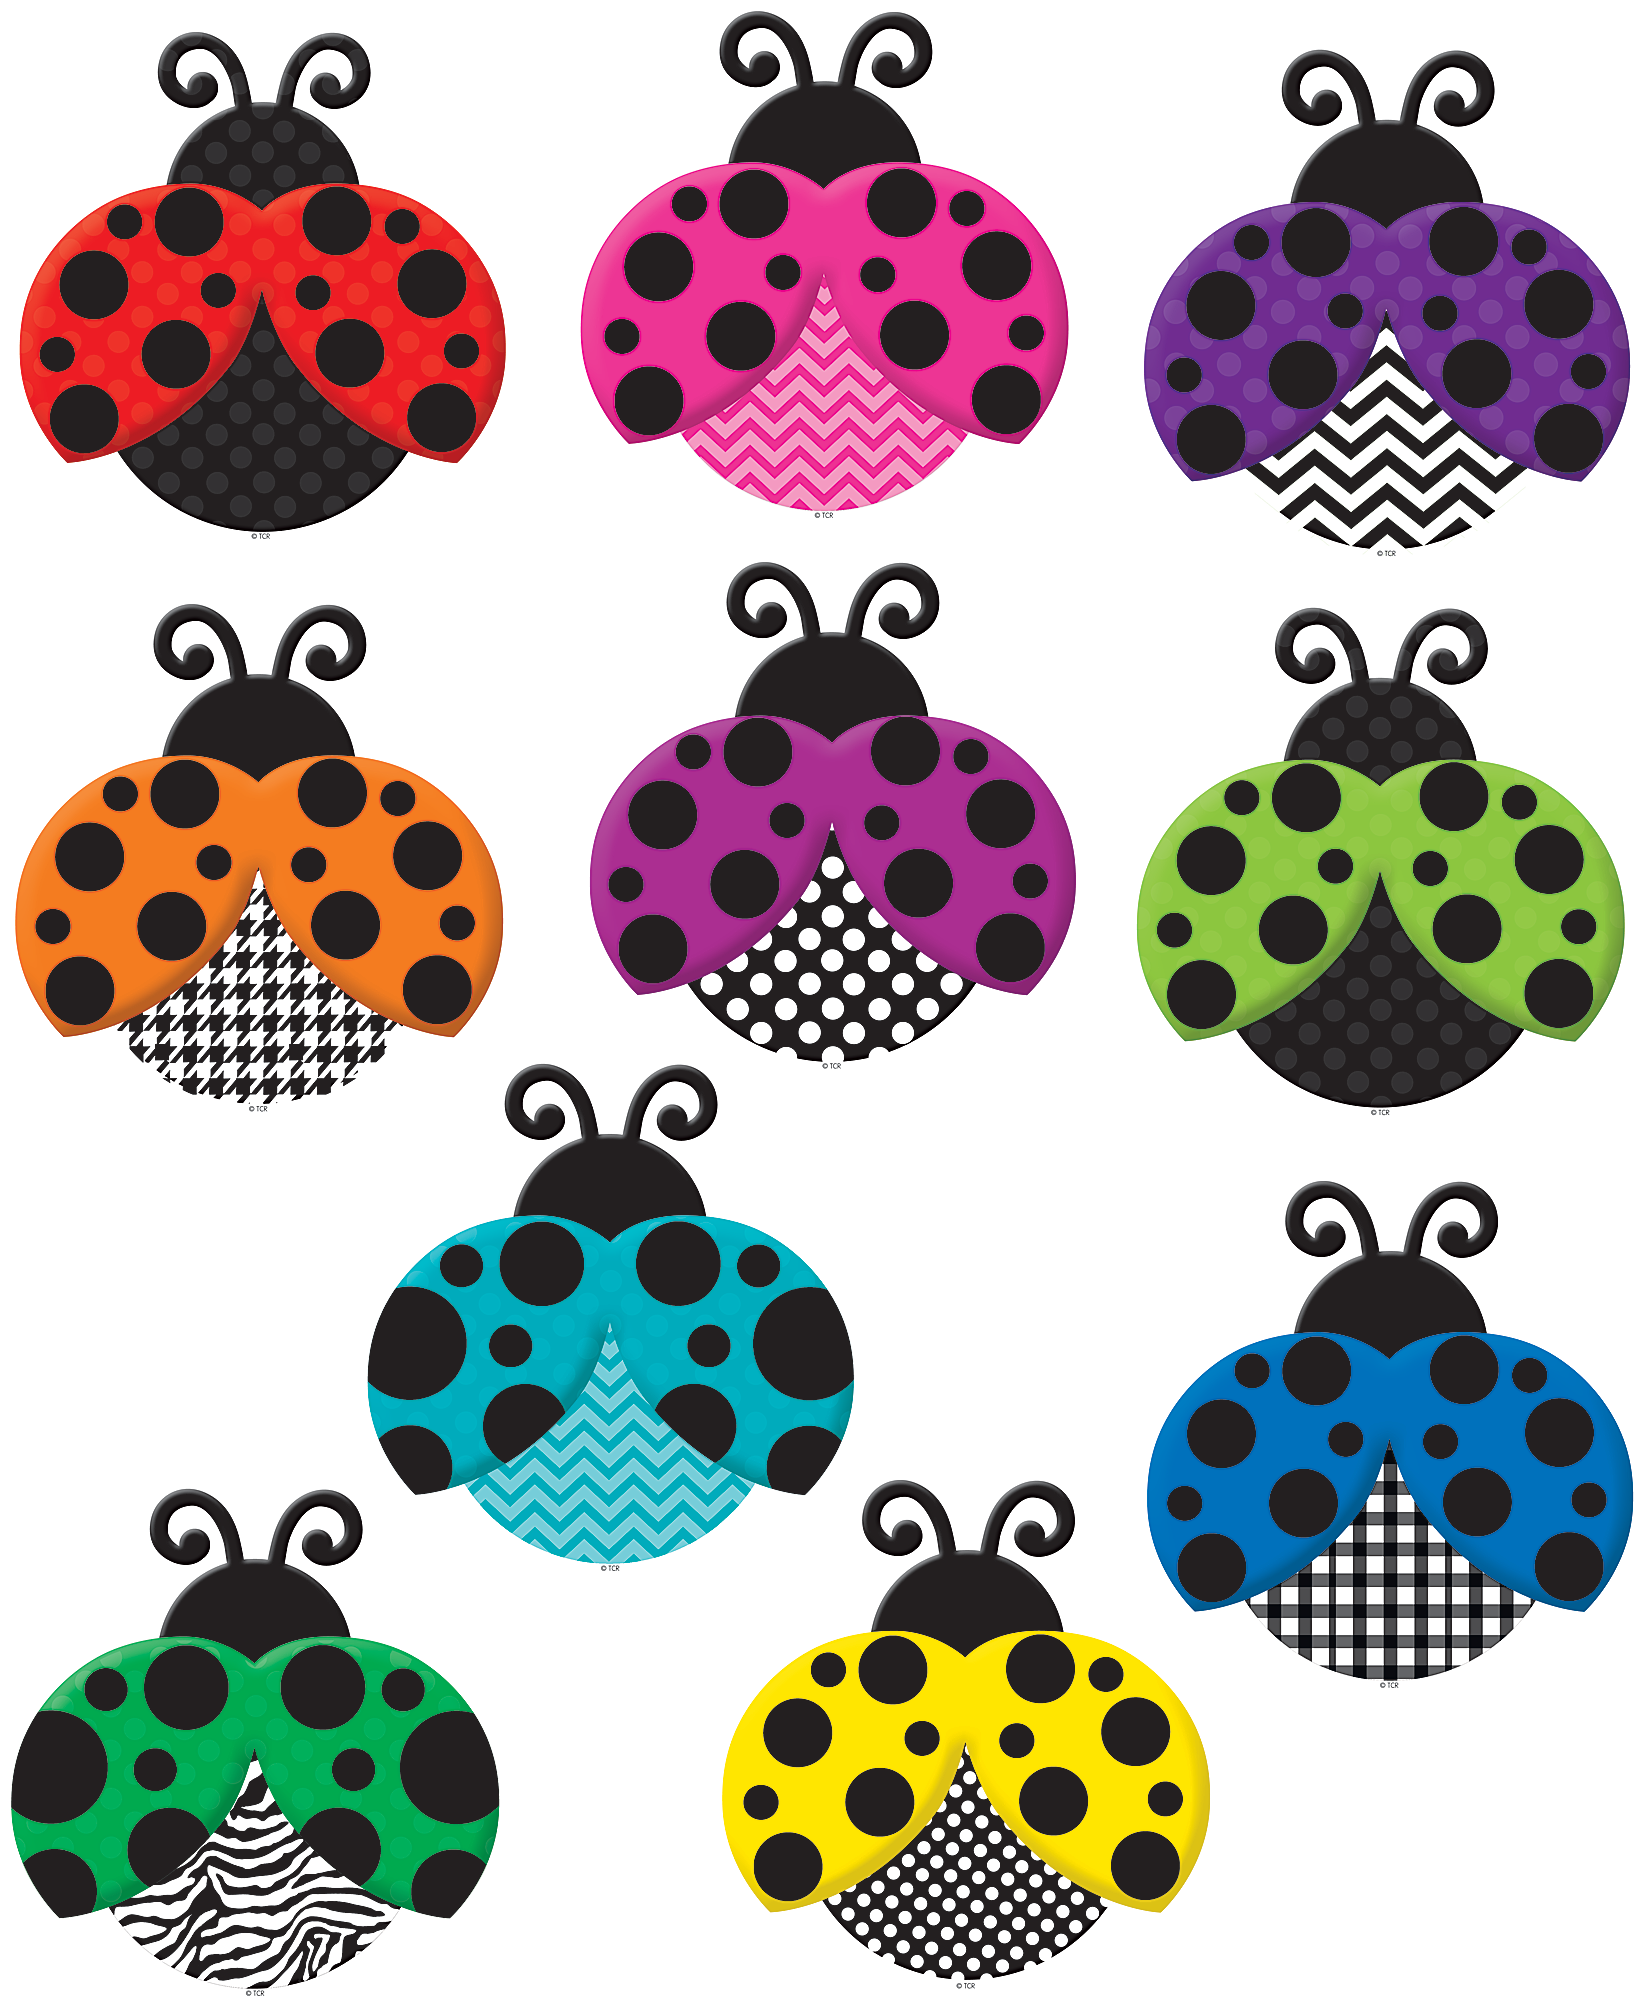 Clipart door colorful door. Ladybugs accents ladybug and